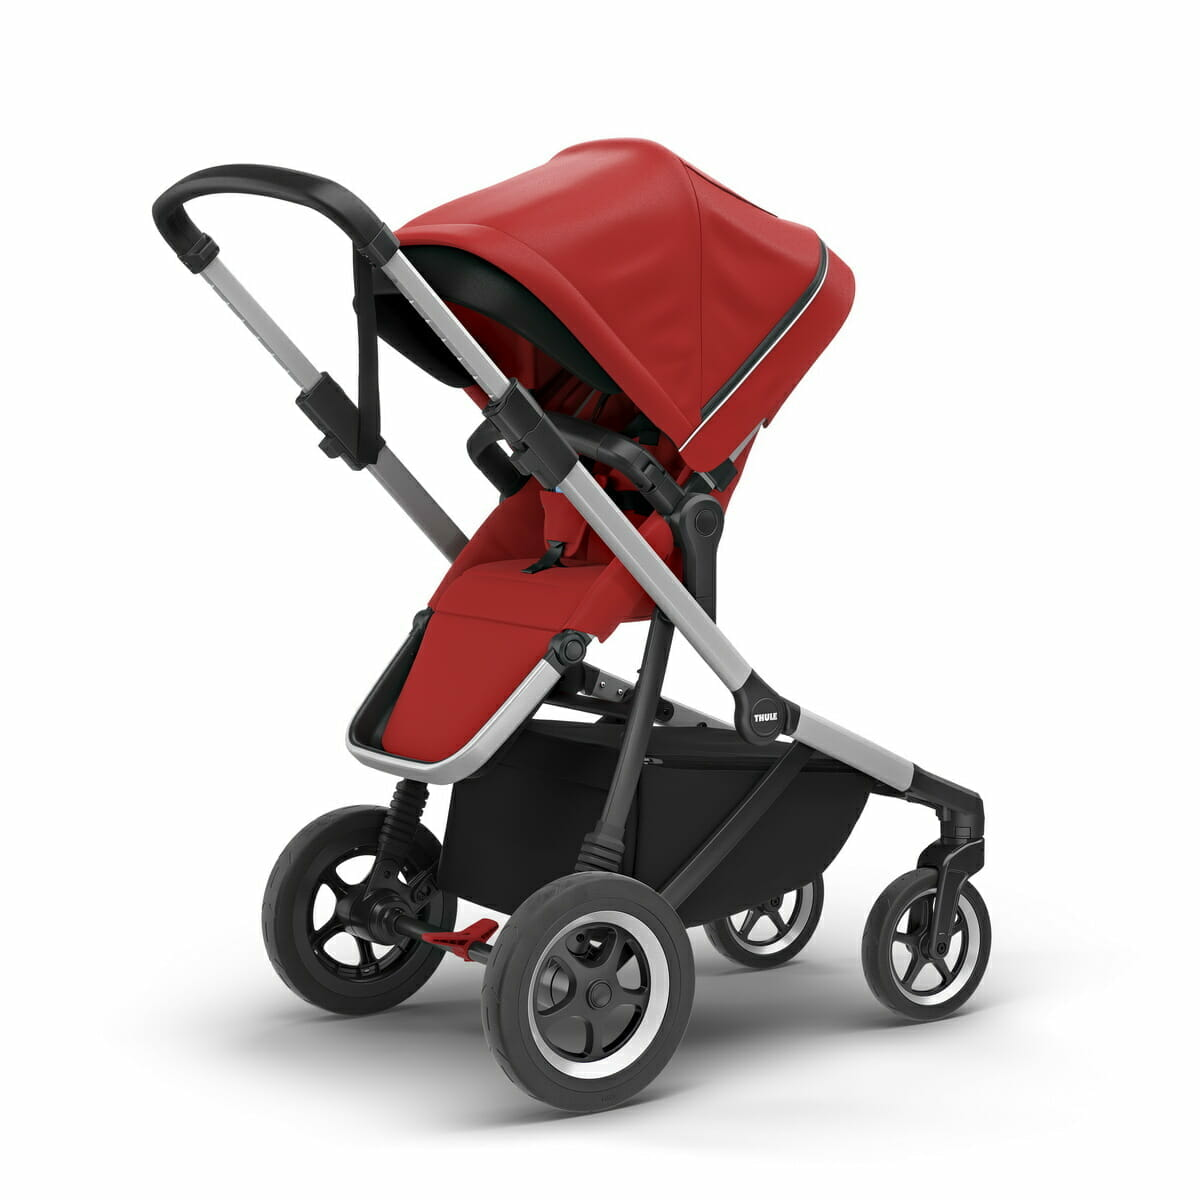 Flexible And Stylish Stroller For Sharing City Adventures With Your Child.